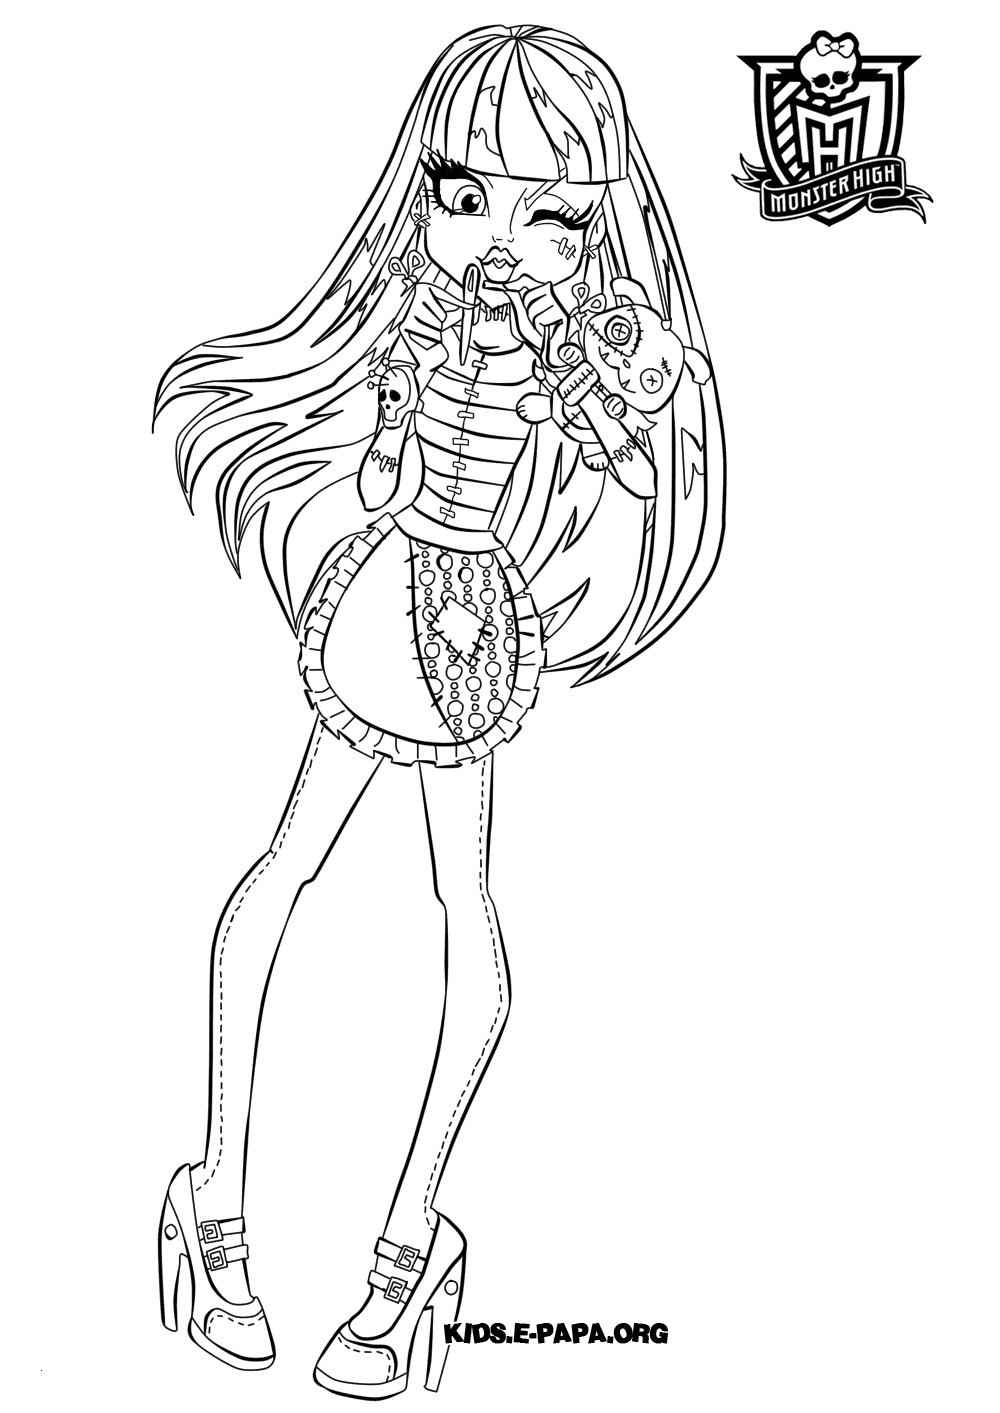 Monster High Ausmalbilder Frisch Clawdeen Wolf Monster High Coloring Page Elegant Monster High Fotos